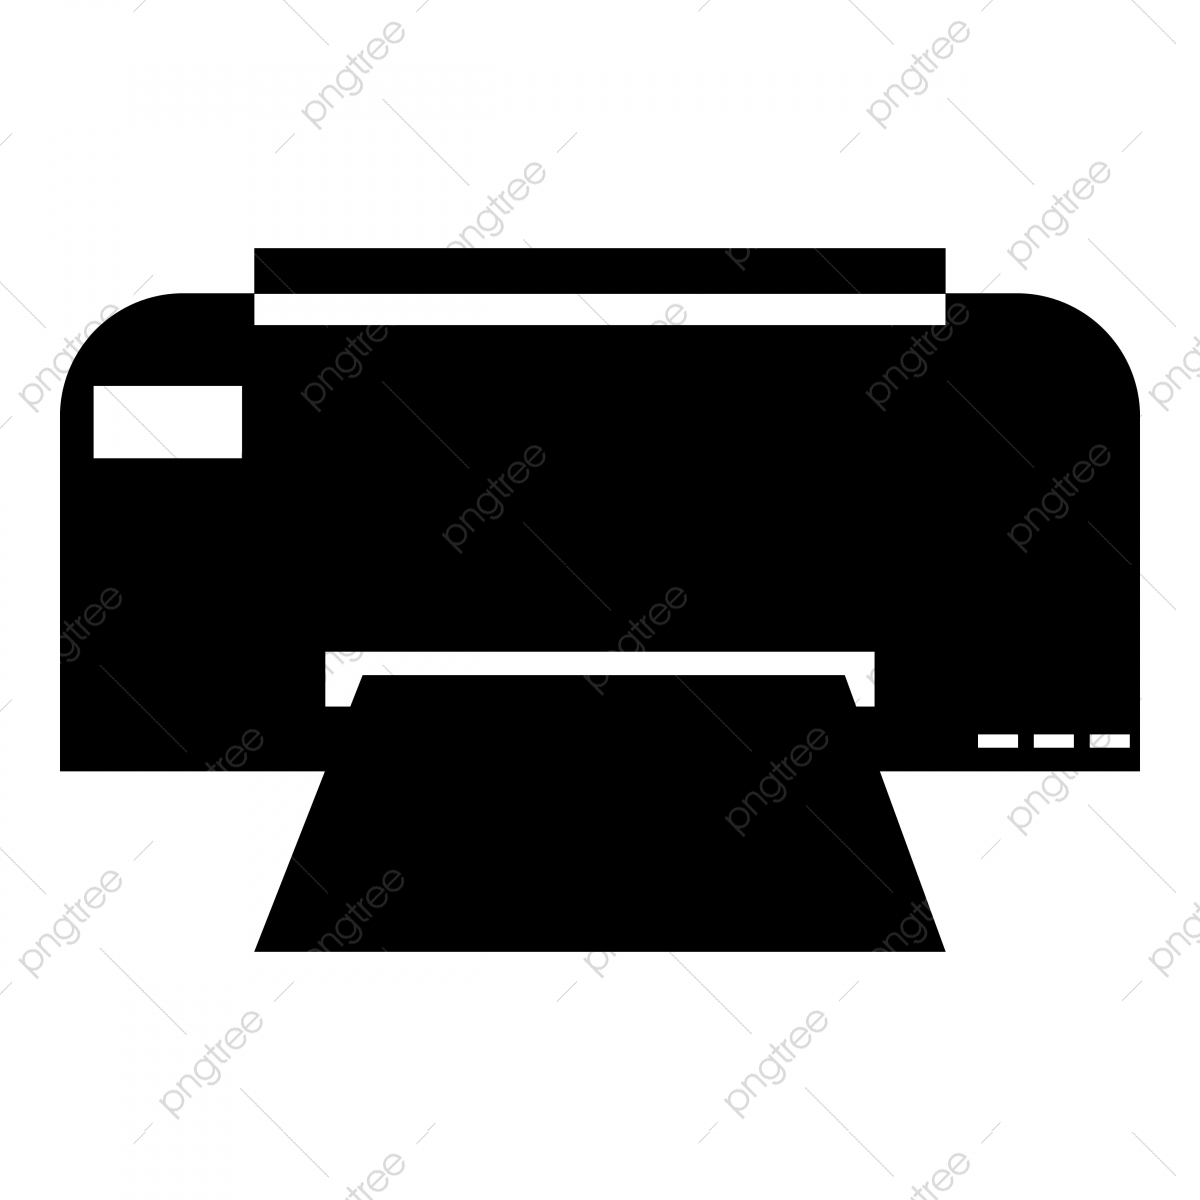 fax icon png vector psd and clipart with transparent background for free download pngtree https pngtree com freepng fax icon simple style 5233139 html